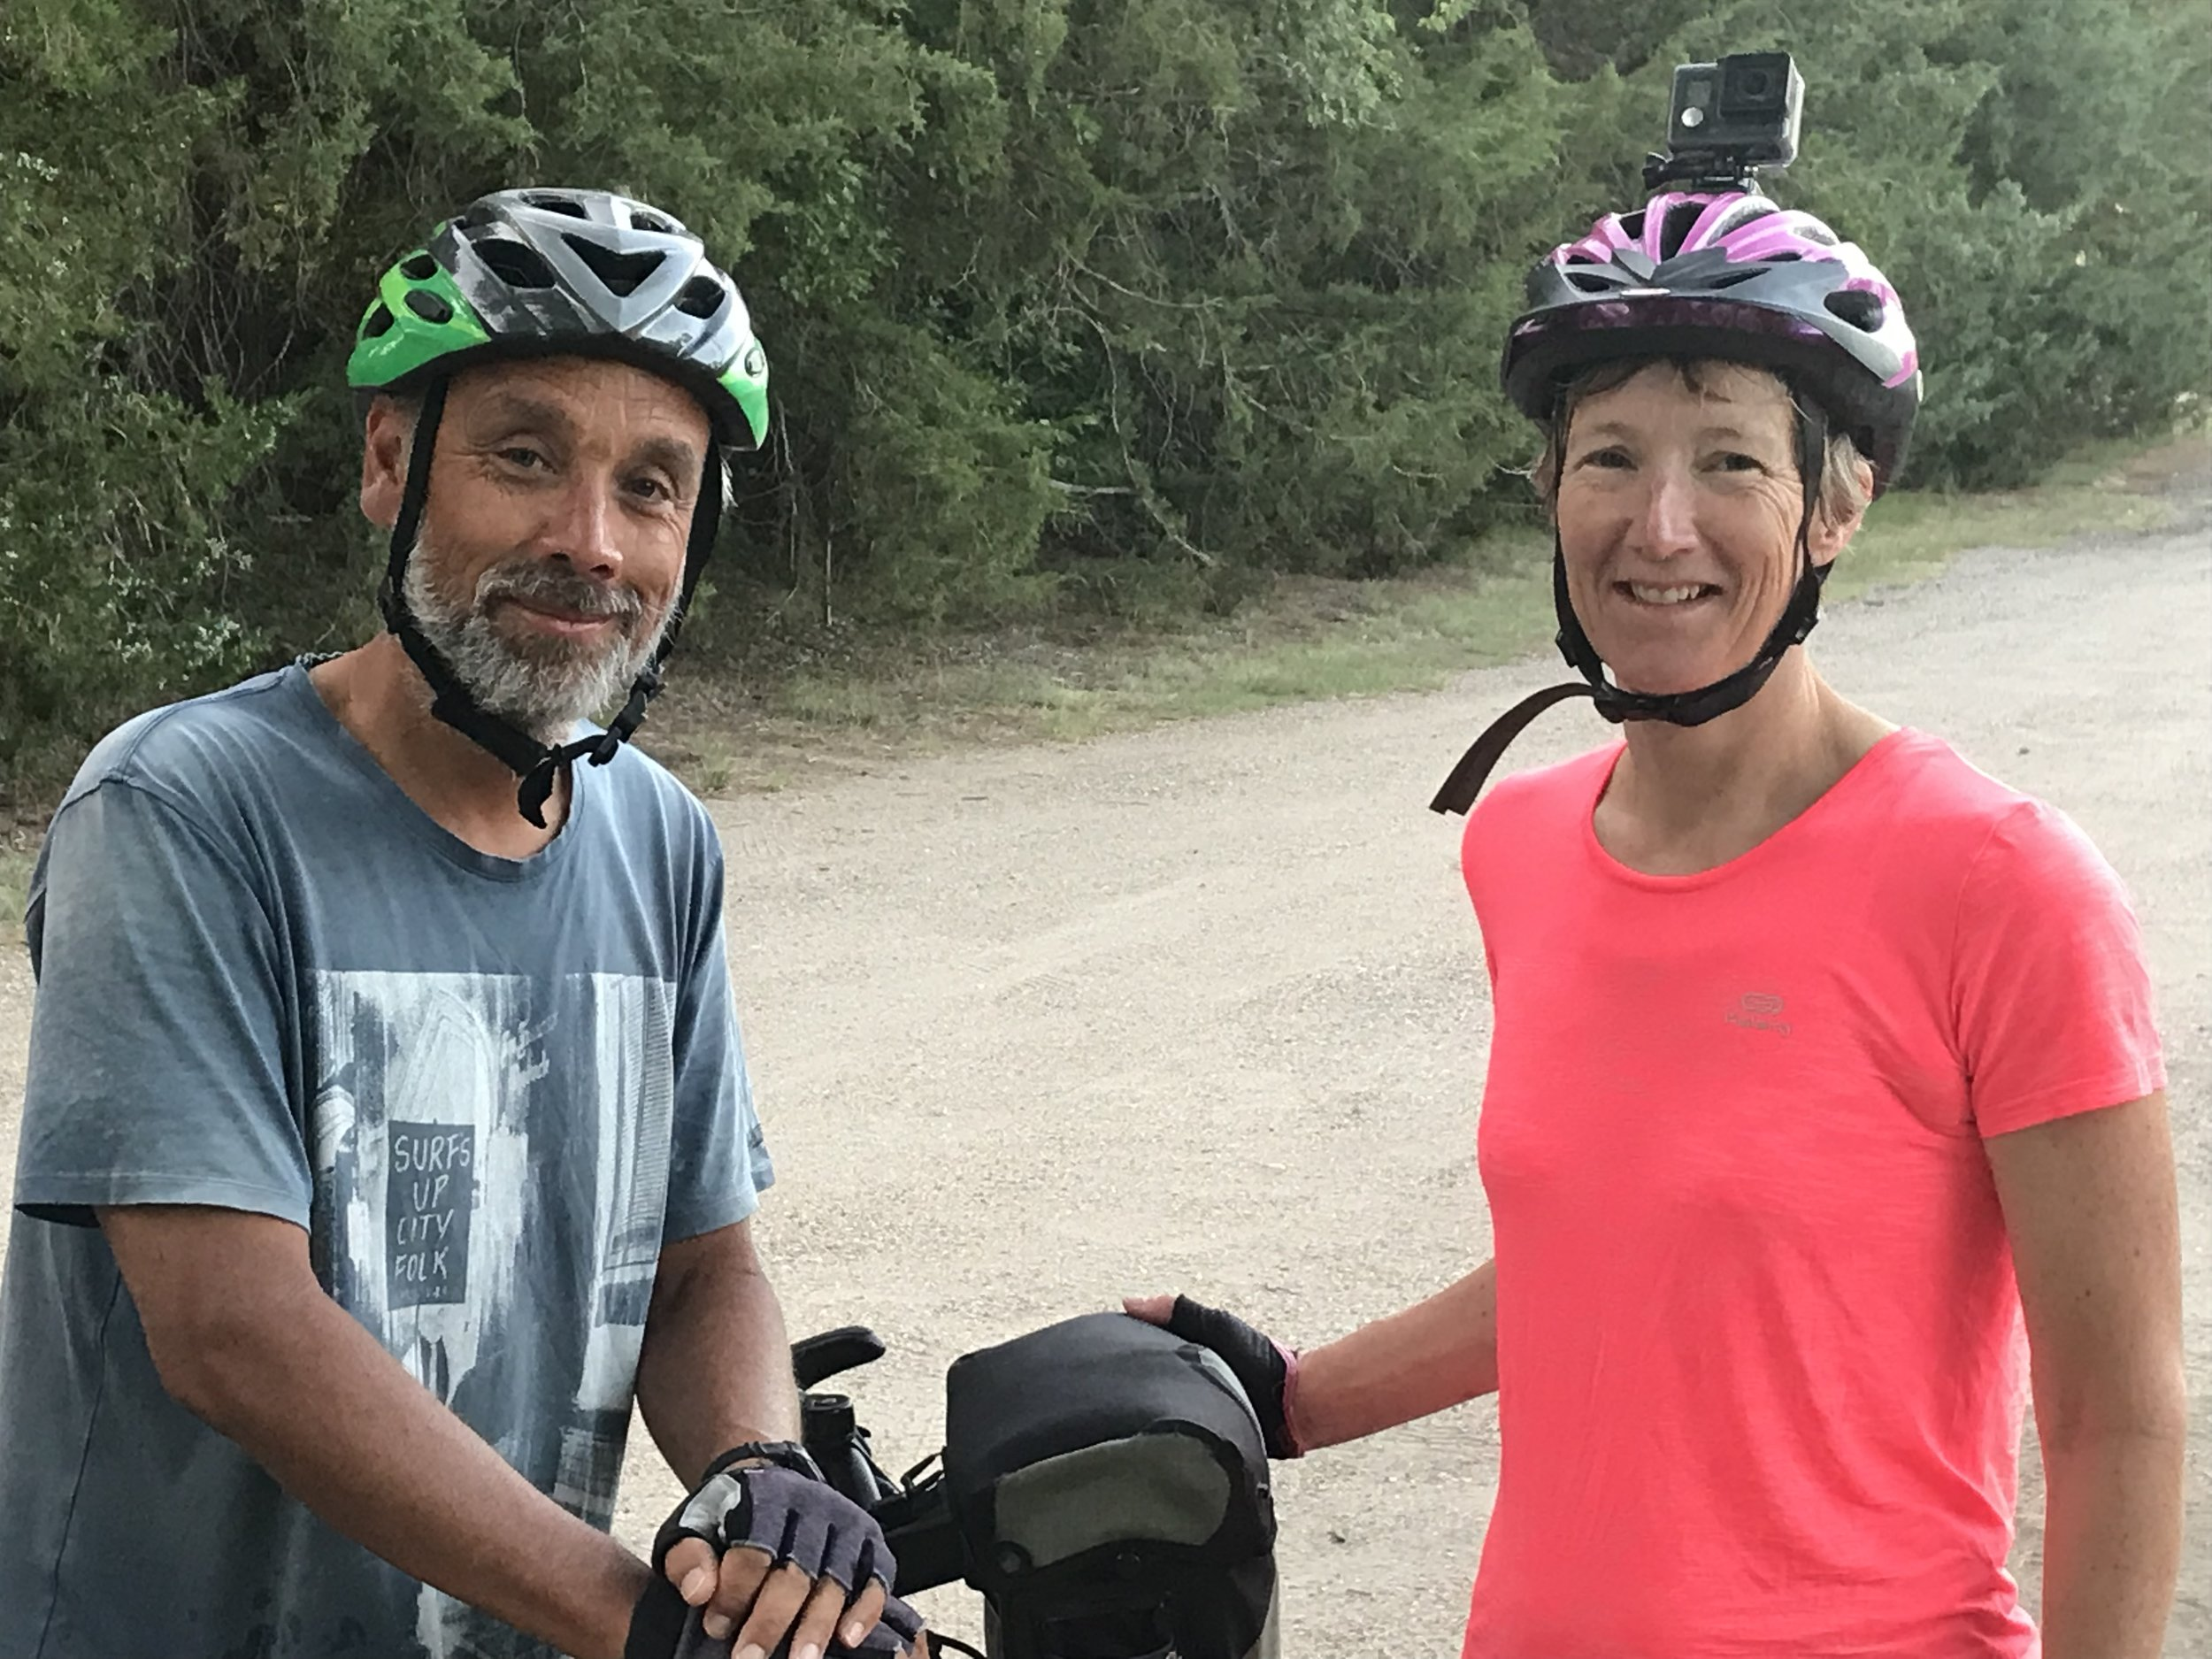 We had the pleasure of camping two different nights with this lovely couple from the Netherlands, Mike and Ineke. They, too, are going west across the TransAmerica Trail.